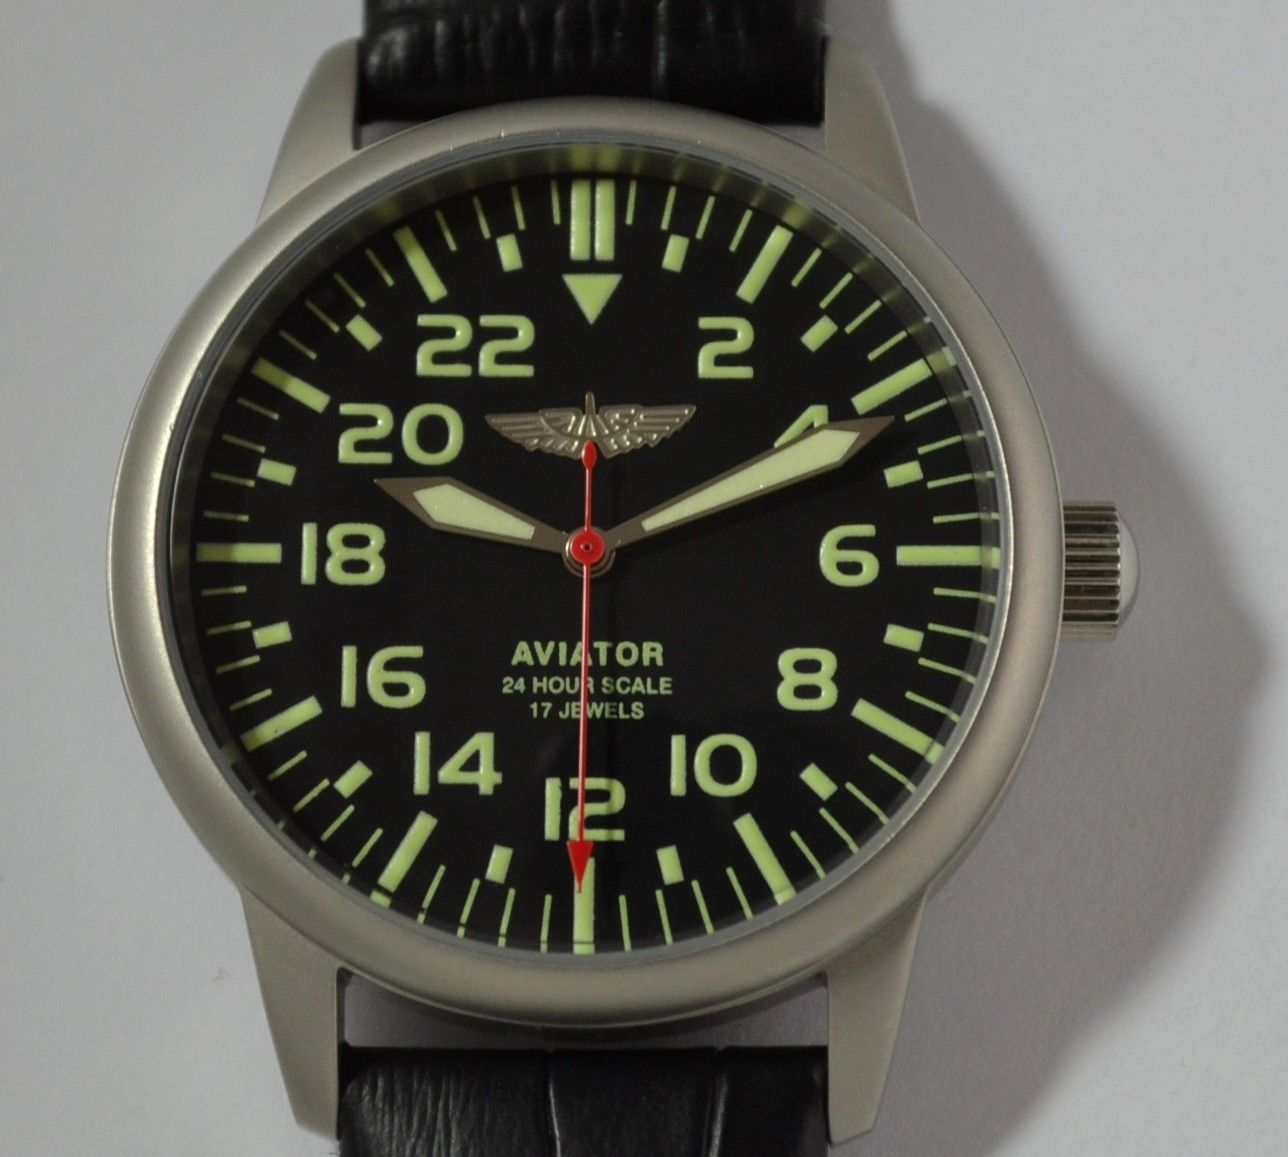 Soviet Military Mechanical watch Raketa Aviator 24 Hours